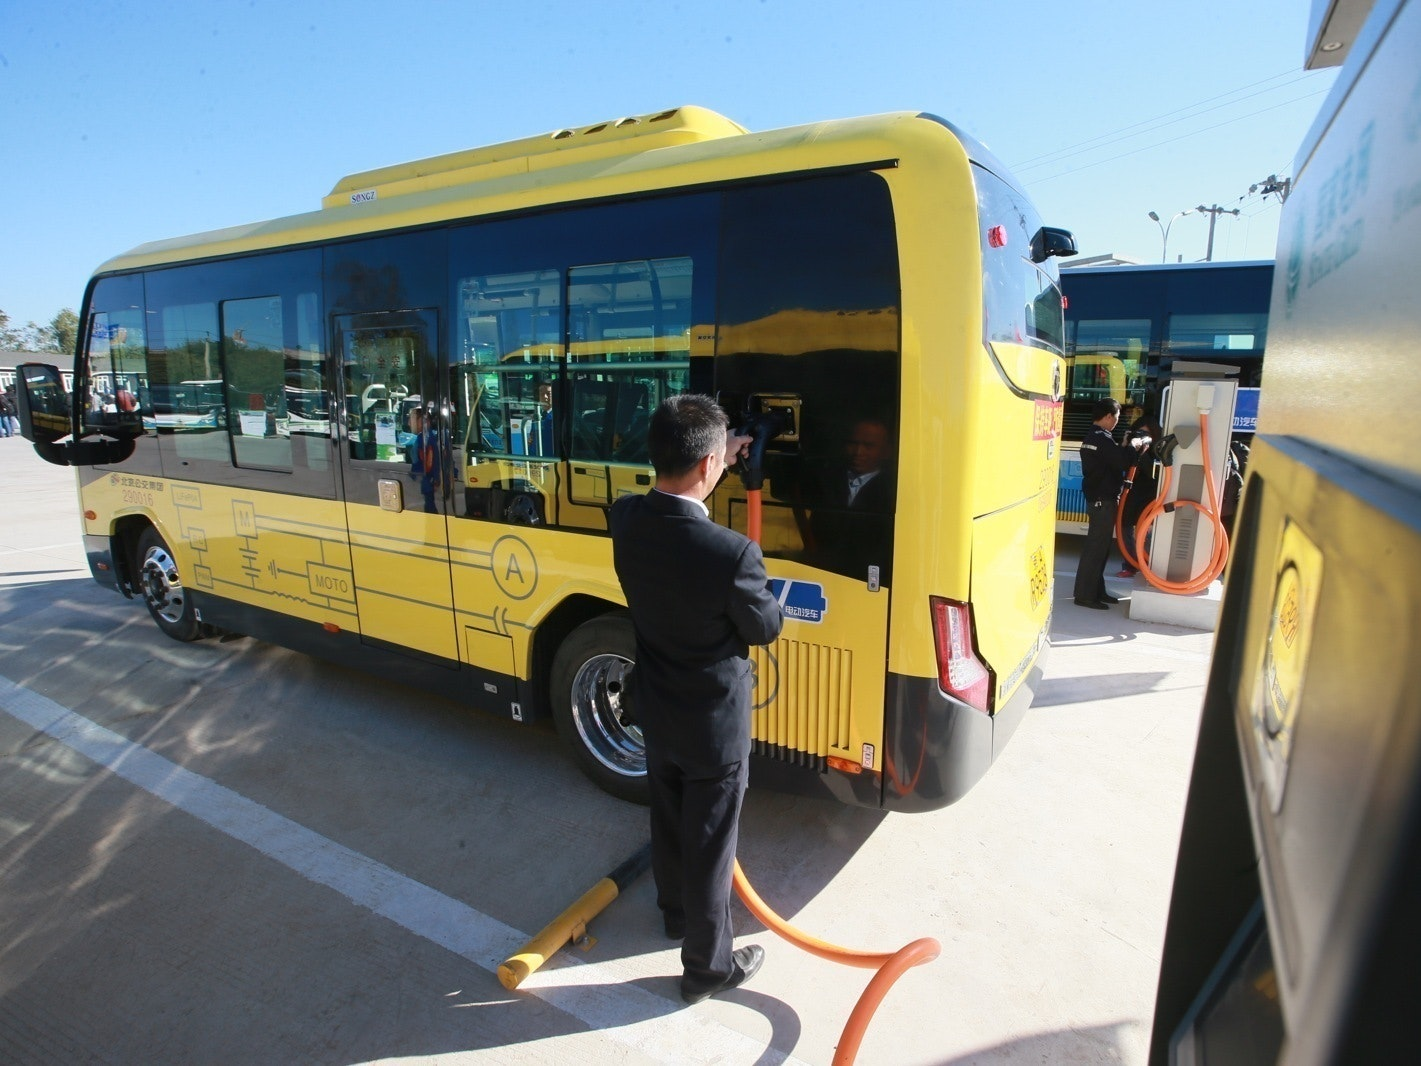 A worker charges an electric bus in Beijing, China. Researchers in Sweden just created a model that proposes the best places in the city to install chargers for electric buses.